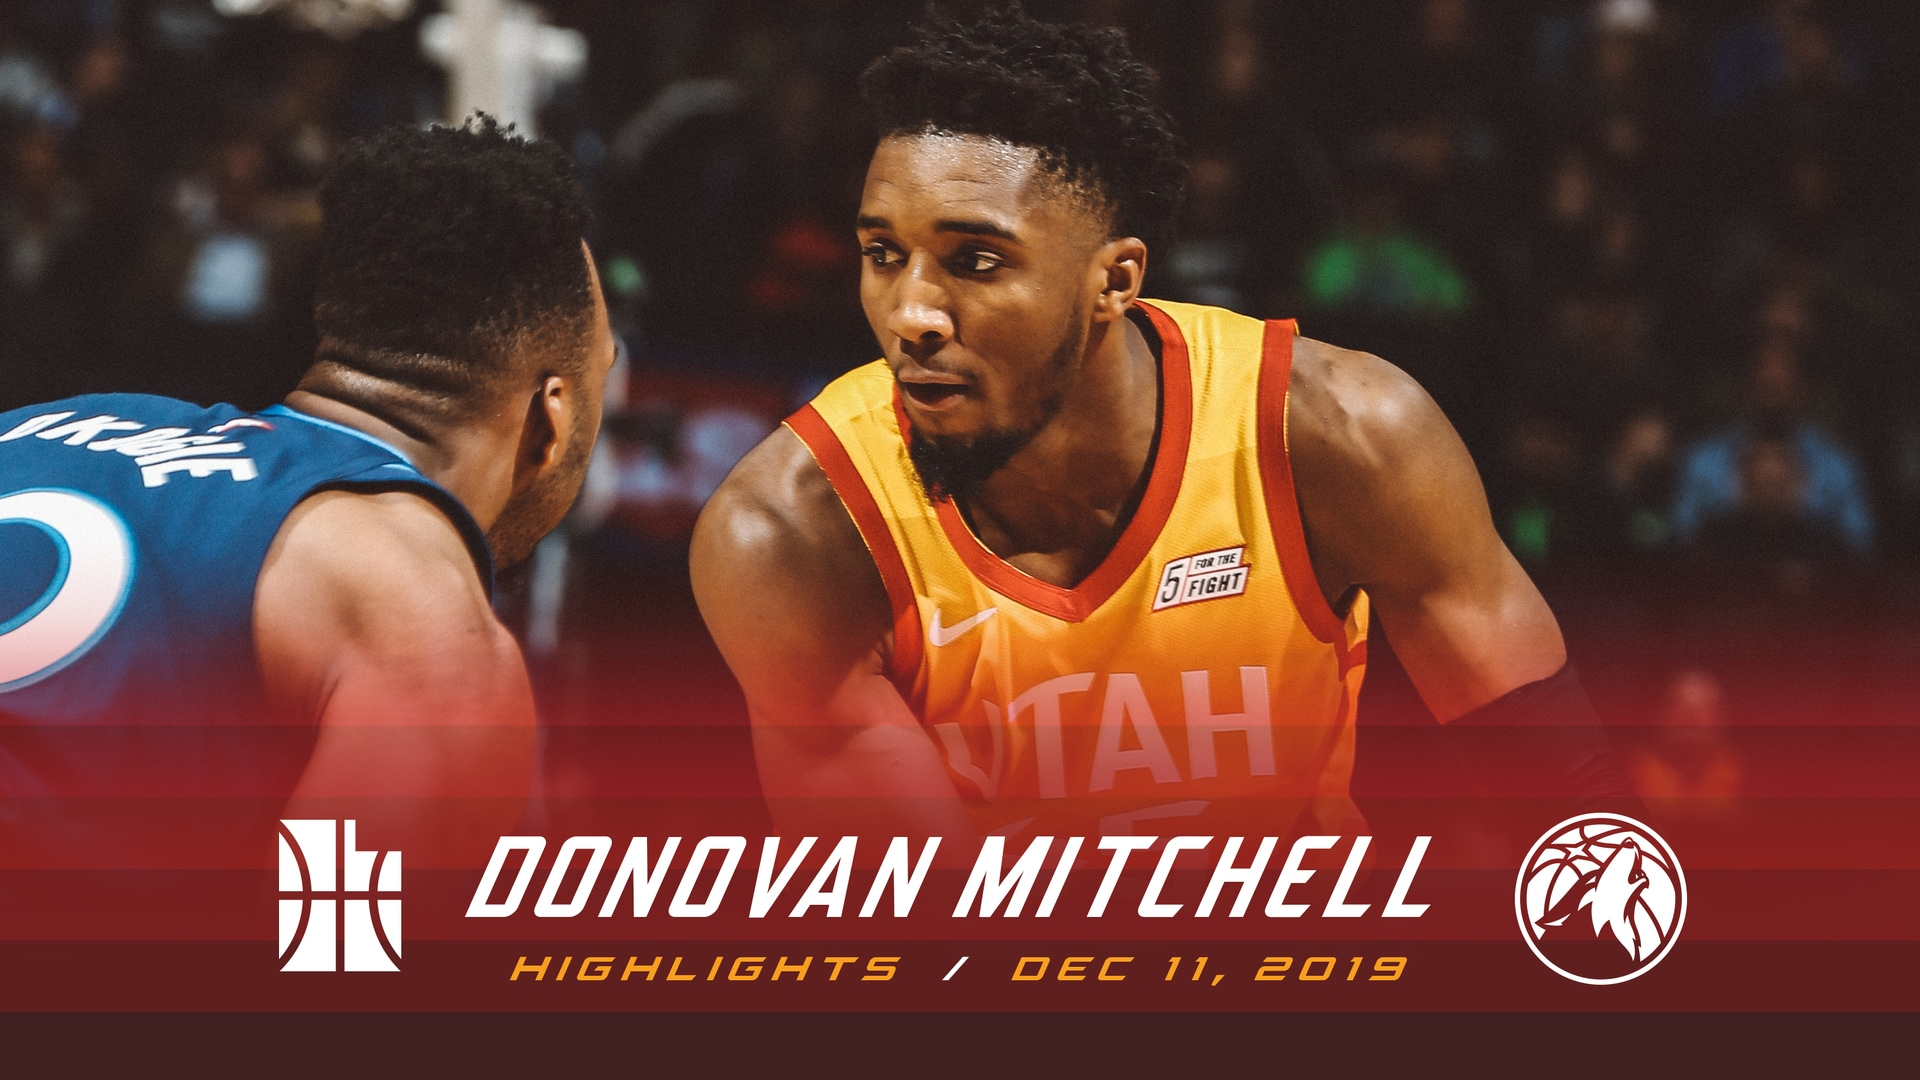 Highlights: Donovan Mitchell — 30 points, 6 assists